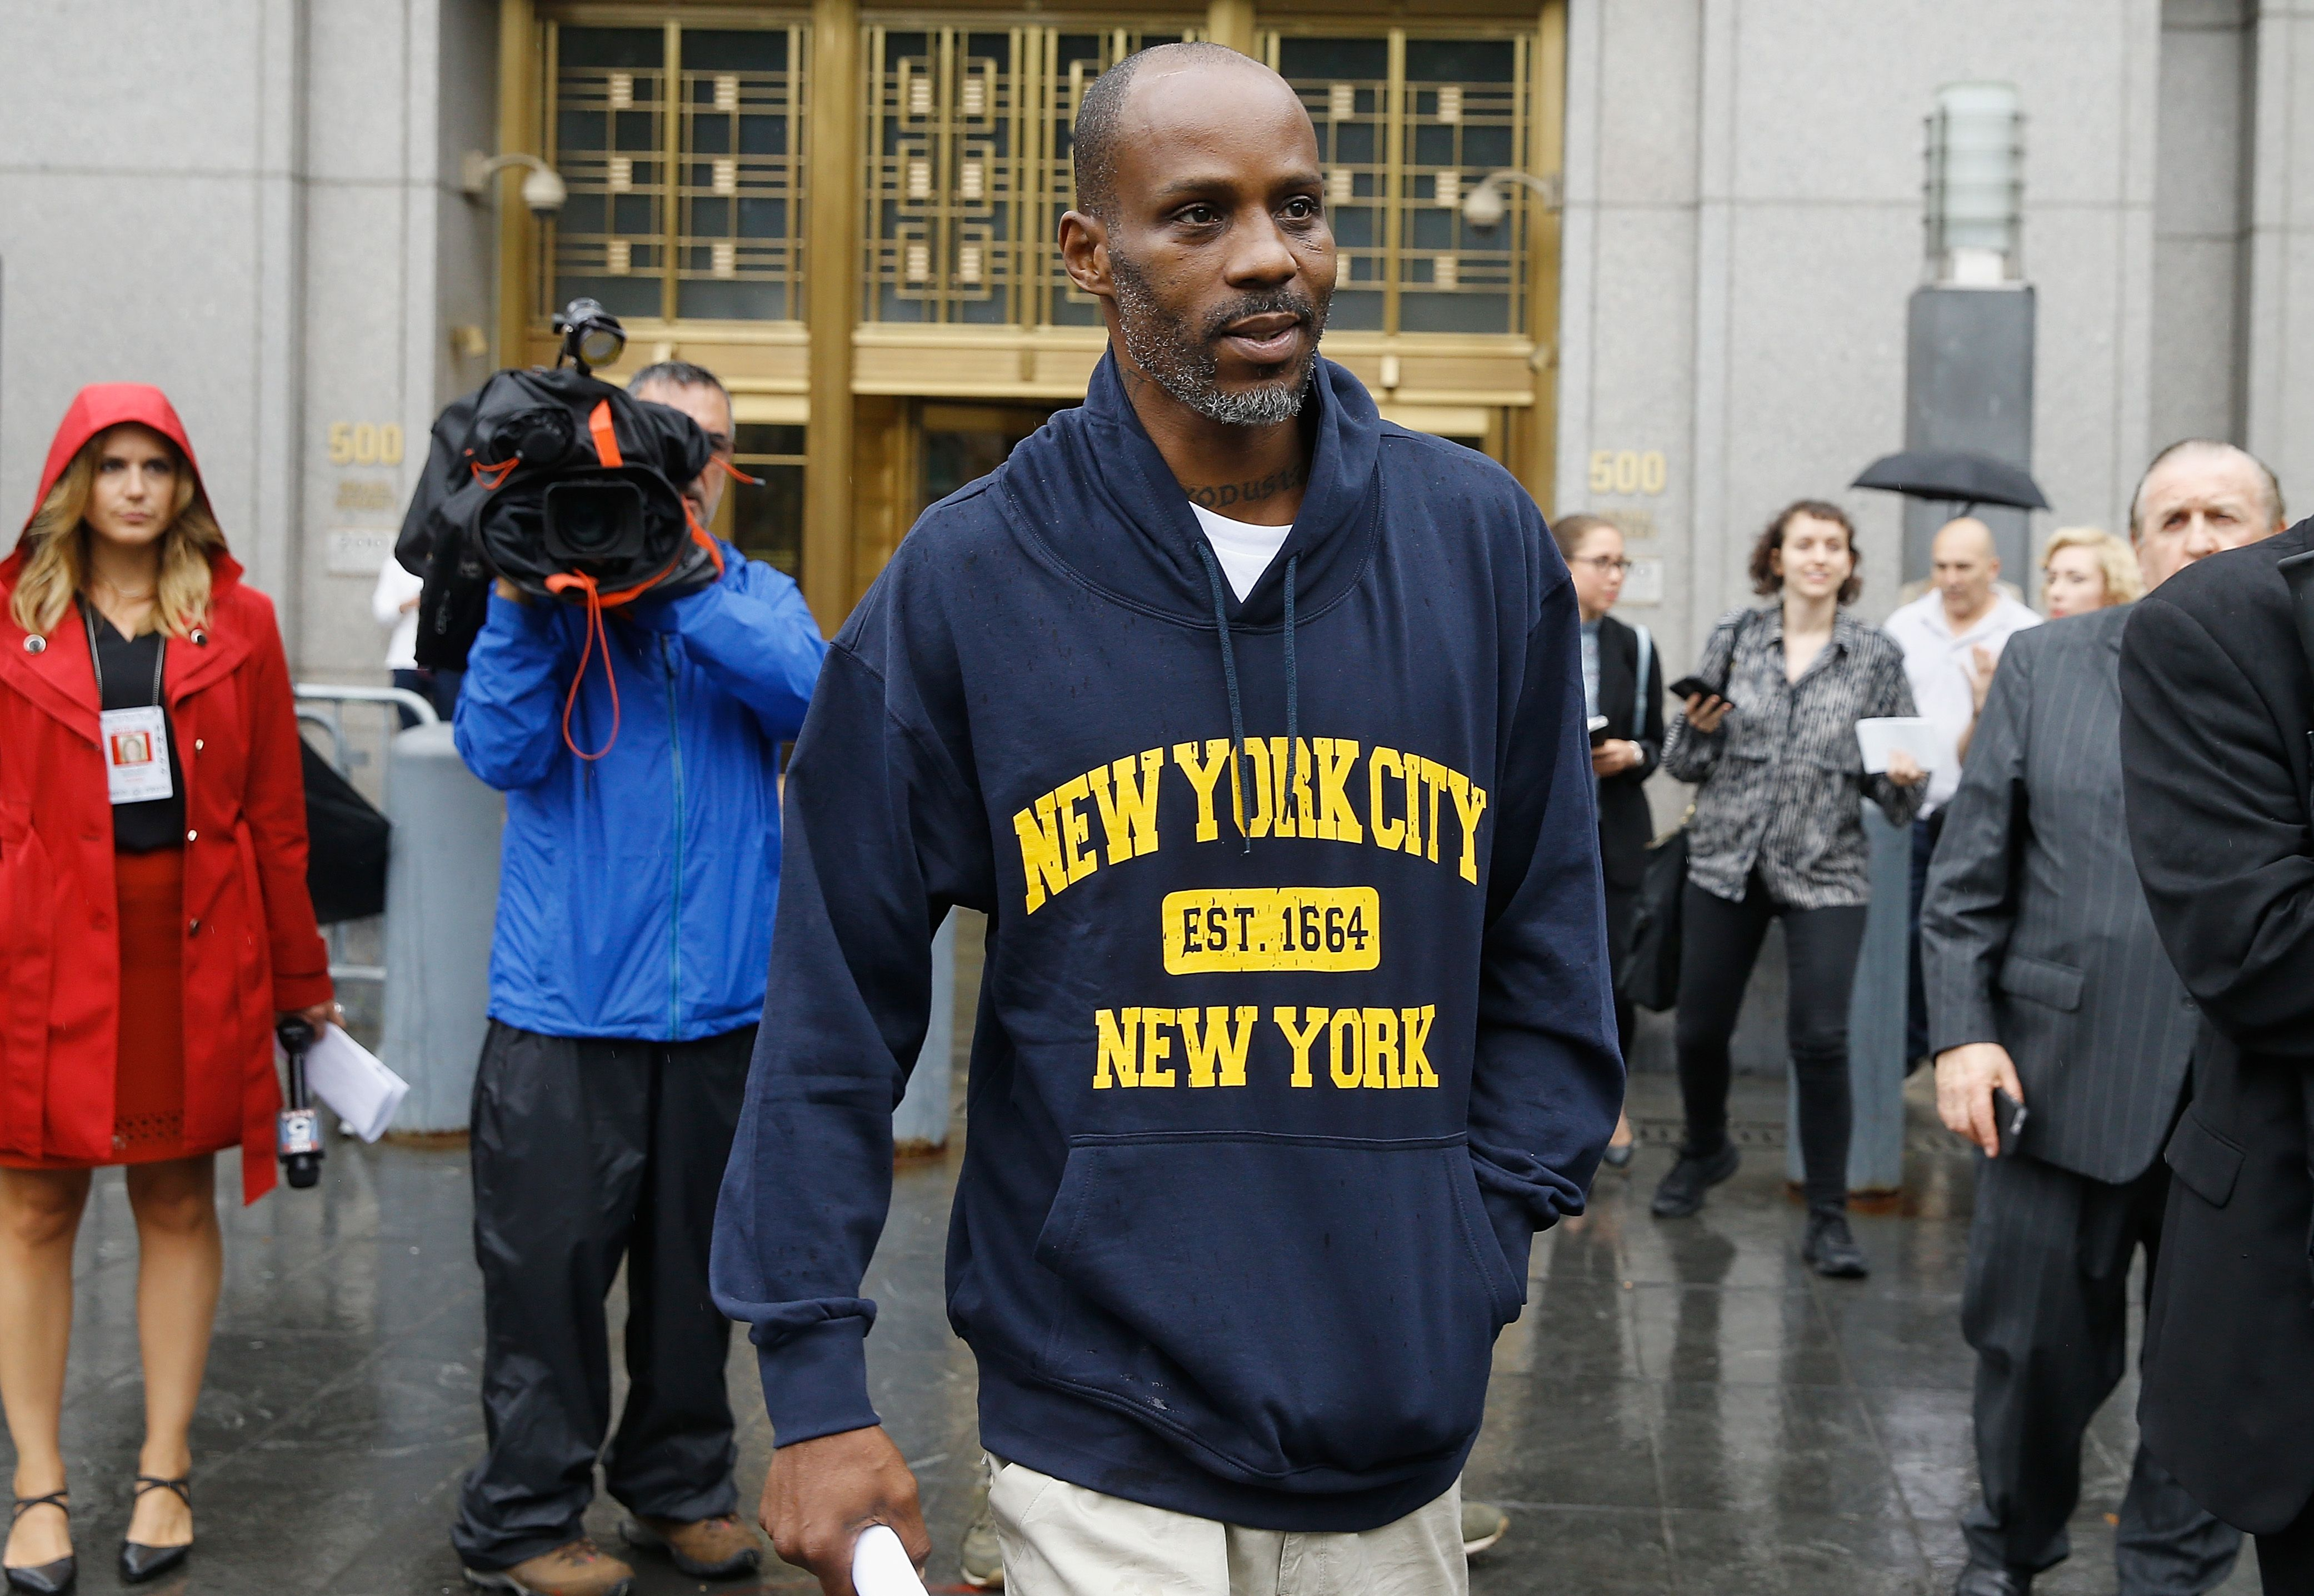 Rapper DMX leaving the courthouse after his tax evasion charges back in 2017, in New York City | Photo: John Lamparski/Getty Images